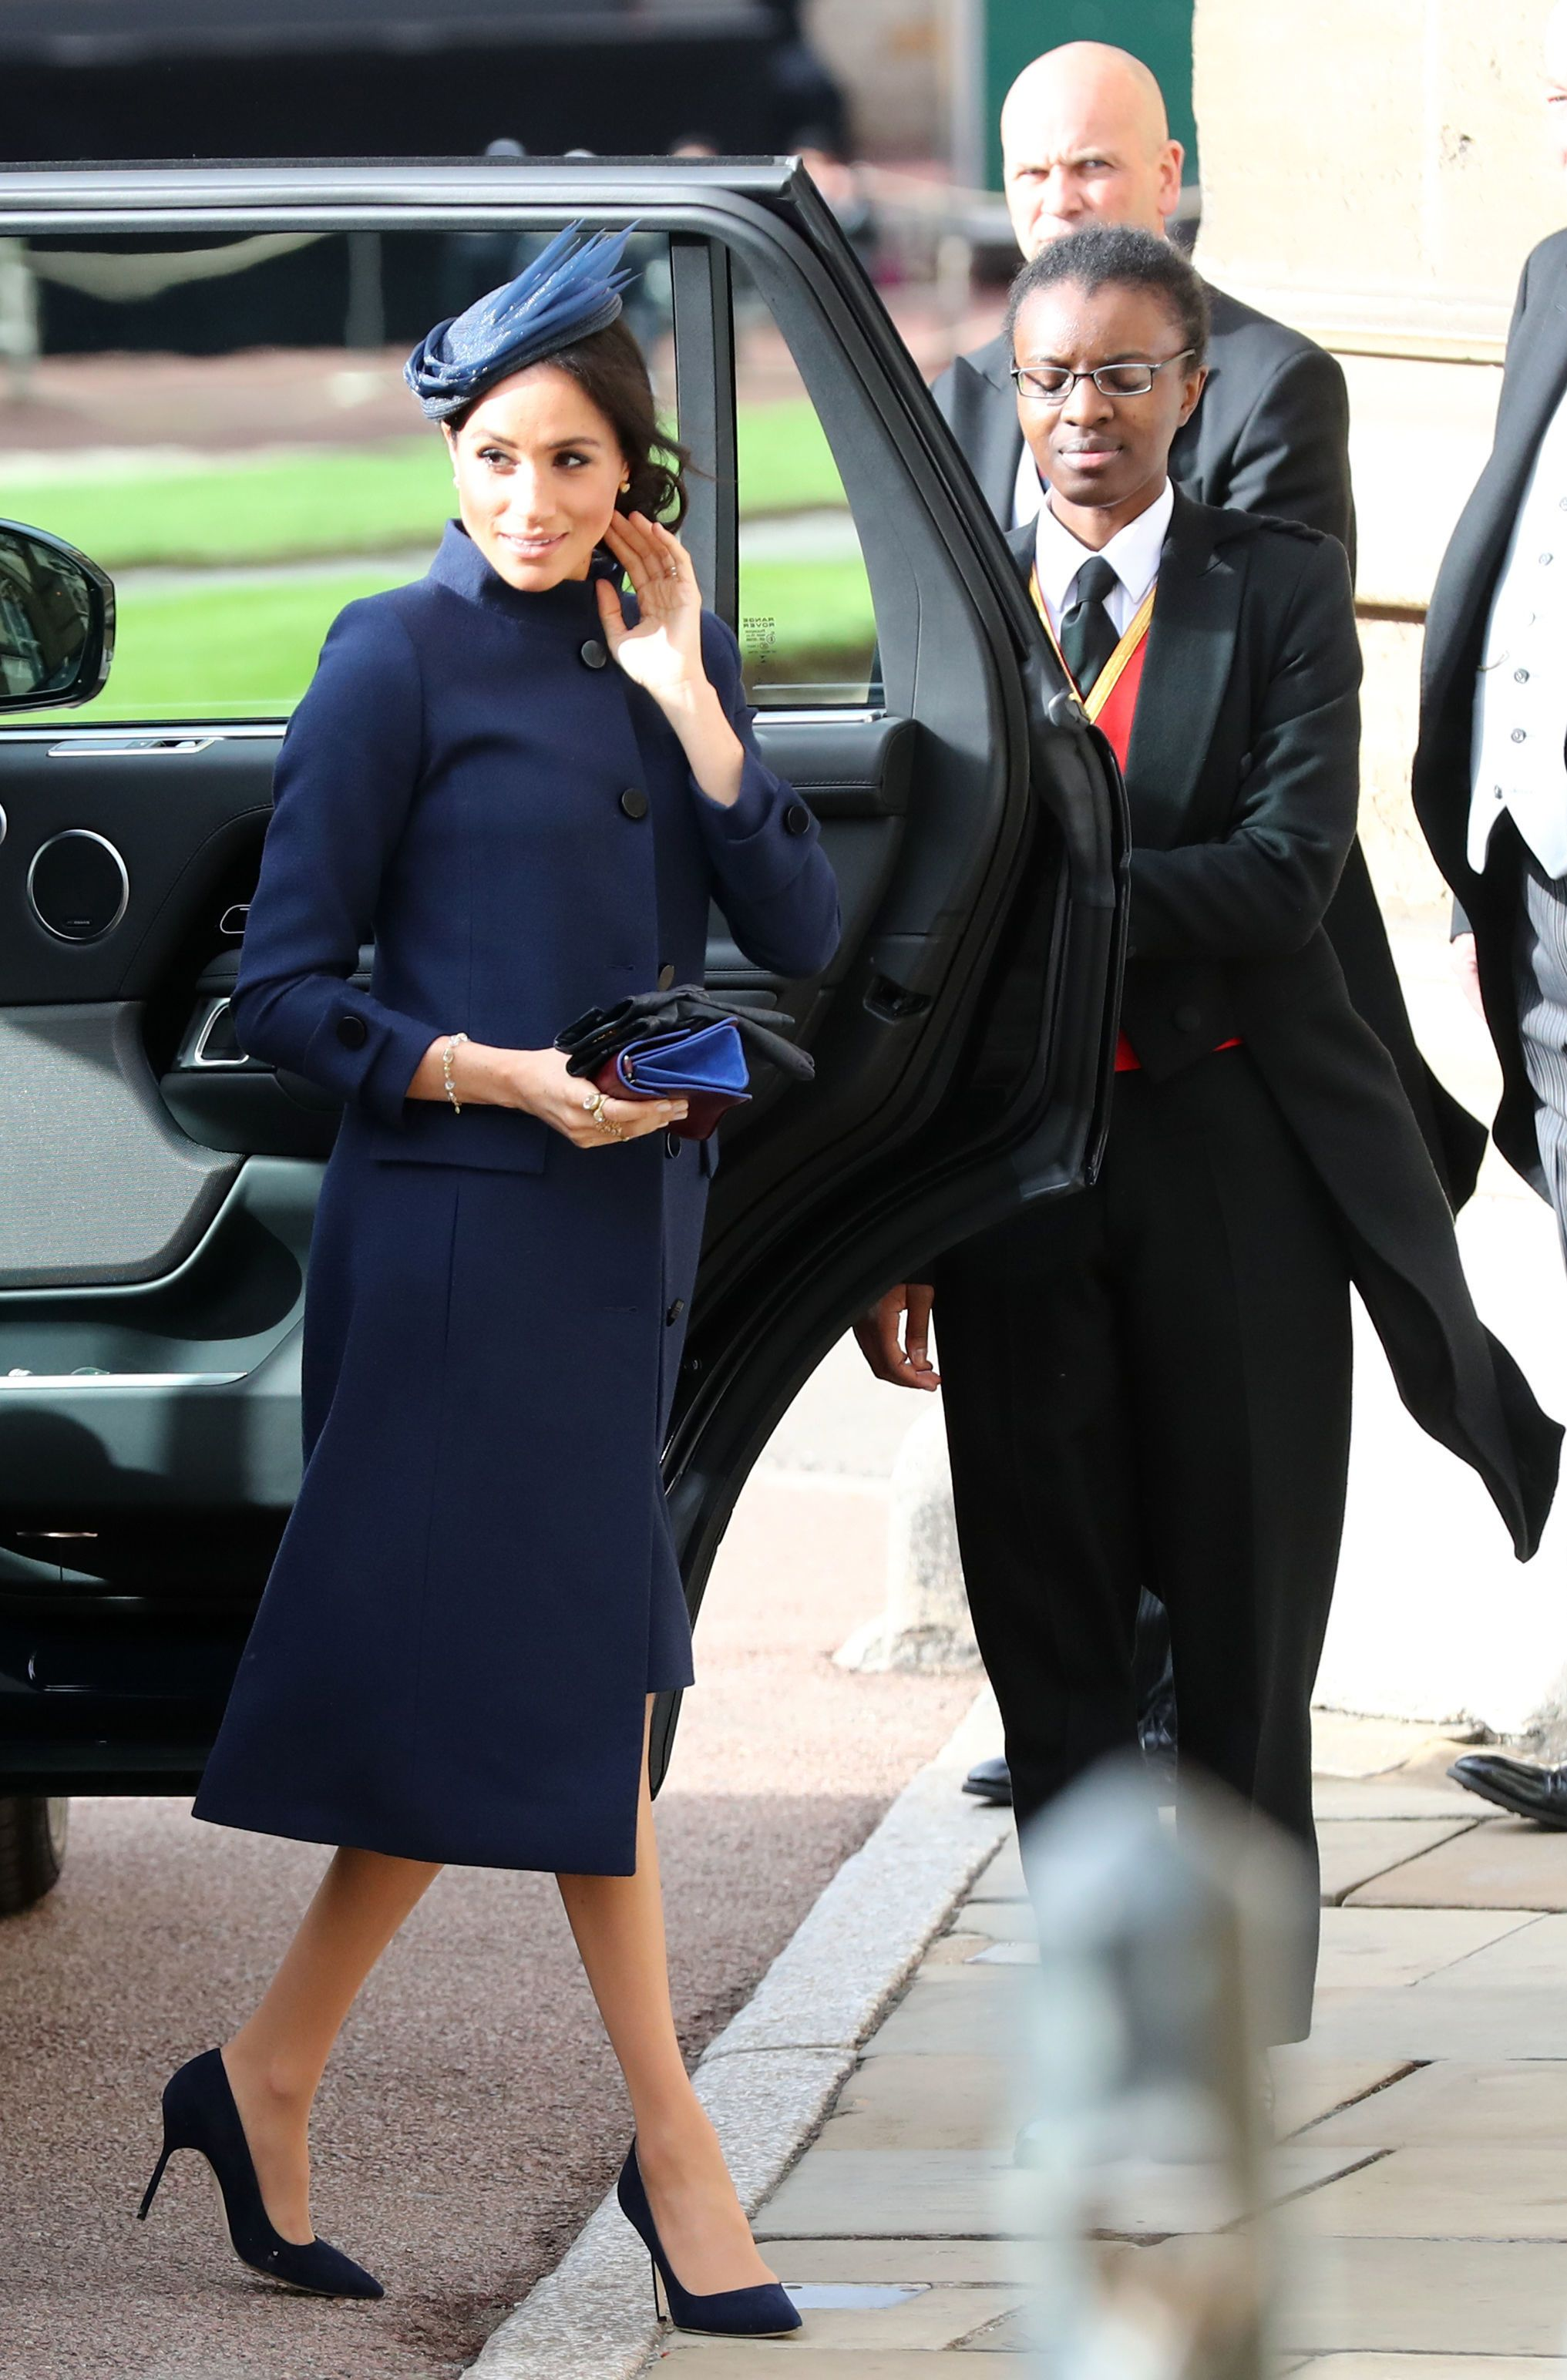 meghan markle style meghan markle s best fashion moments meghan markle style meghan markle s